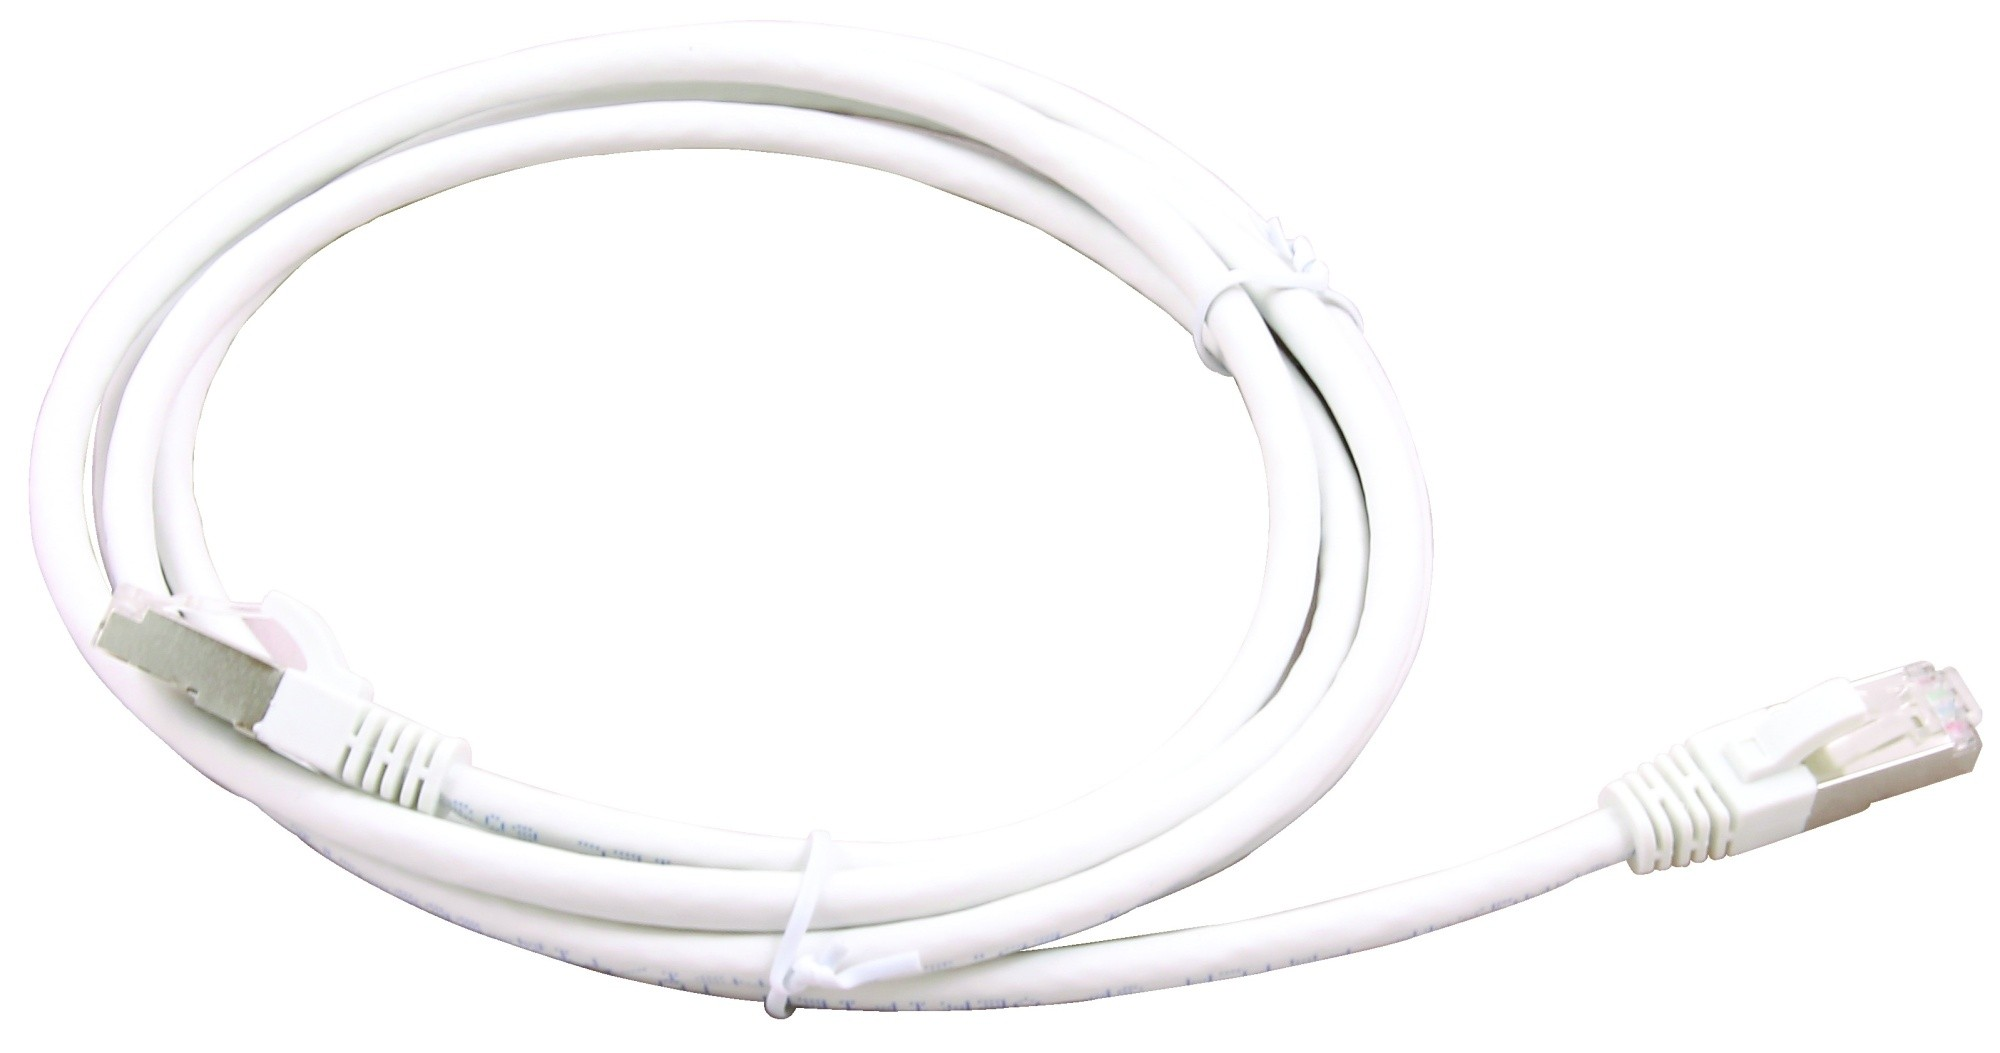 Connectix Network Patch Cable Cat 6A 1.5M In White